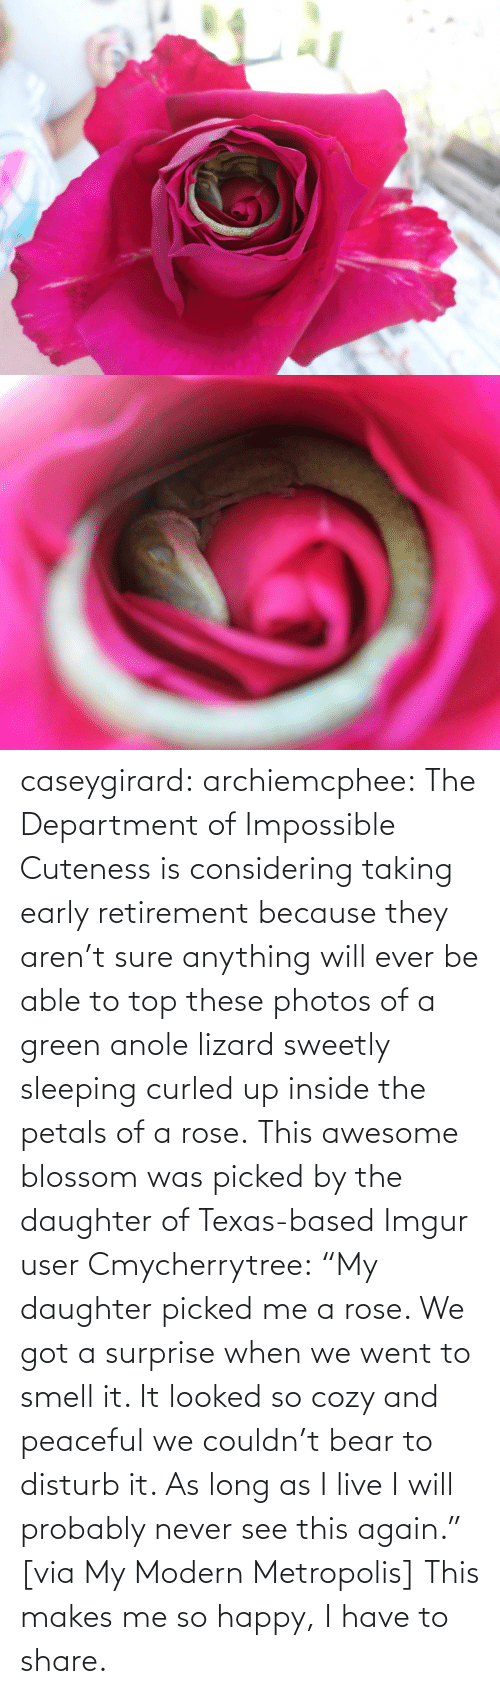 "Imgur Com: caseygirard:  archiemcphee:   The Department of Impossible Cuteness is considering taking early retirement because they aren't sure anything will ever be able to top these photos of a green anole lizard sweetly sleeping curled up inside the petals of a rose. This awesome blossom was picked by the daughter of Texas-based Imgur user Cmycherrytree: ""My daughter picked me a rose. We got a surprise when we went to smell it. It looked so cozy and peaceful we couldn't bear to disturb it. As long as I live I will probably never see this again."" [via My Modern Metropolis]   This makes me so happy, I have to share."